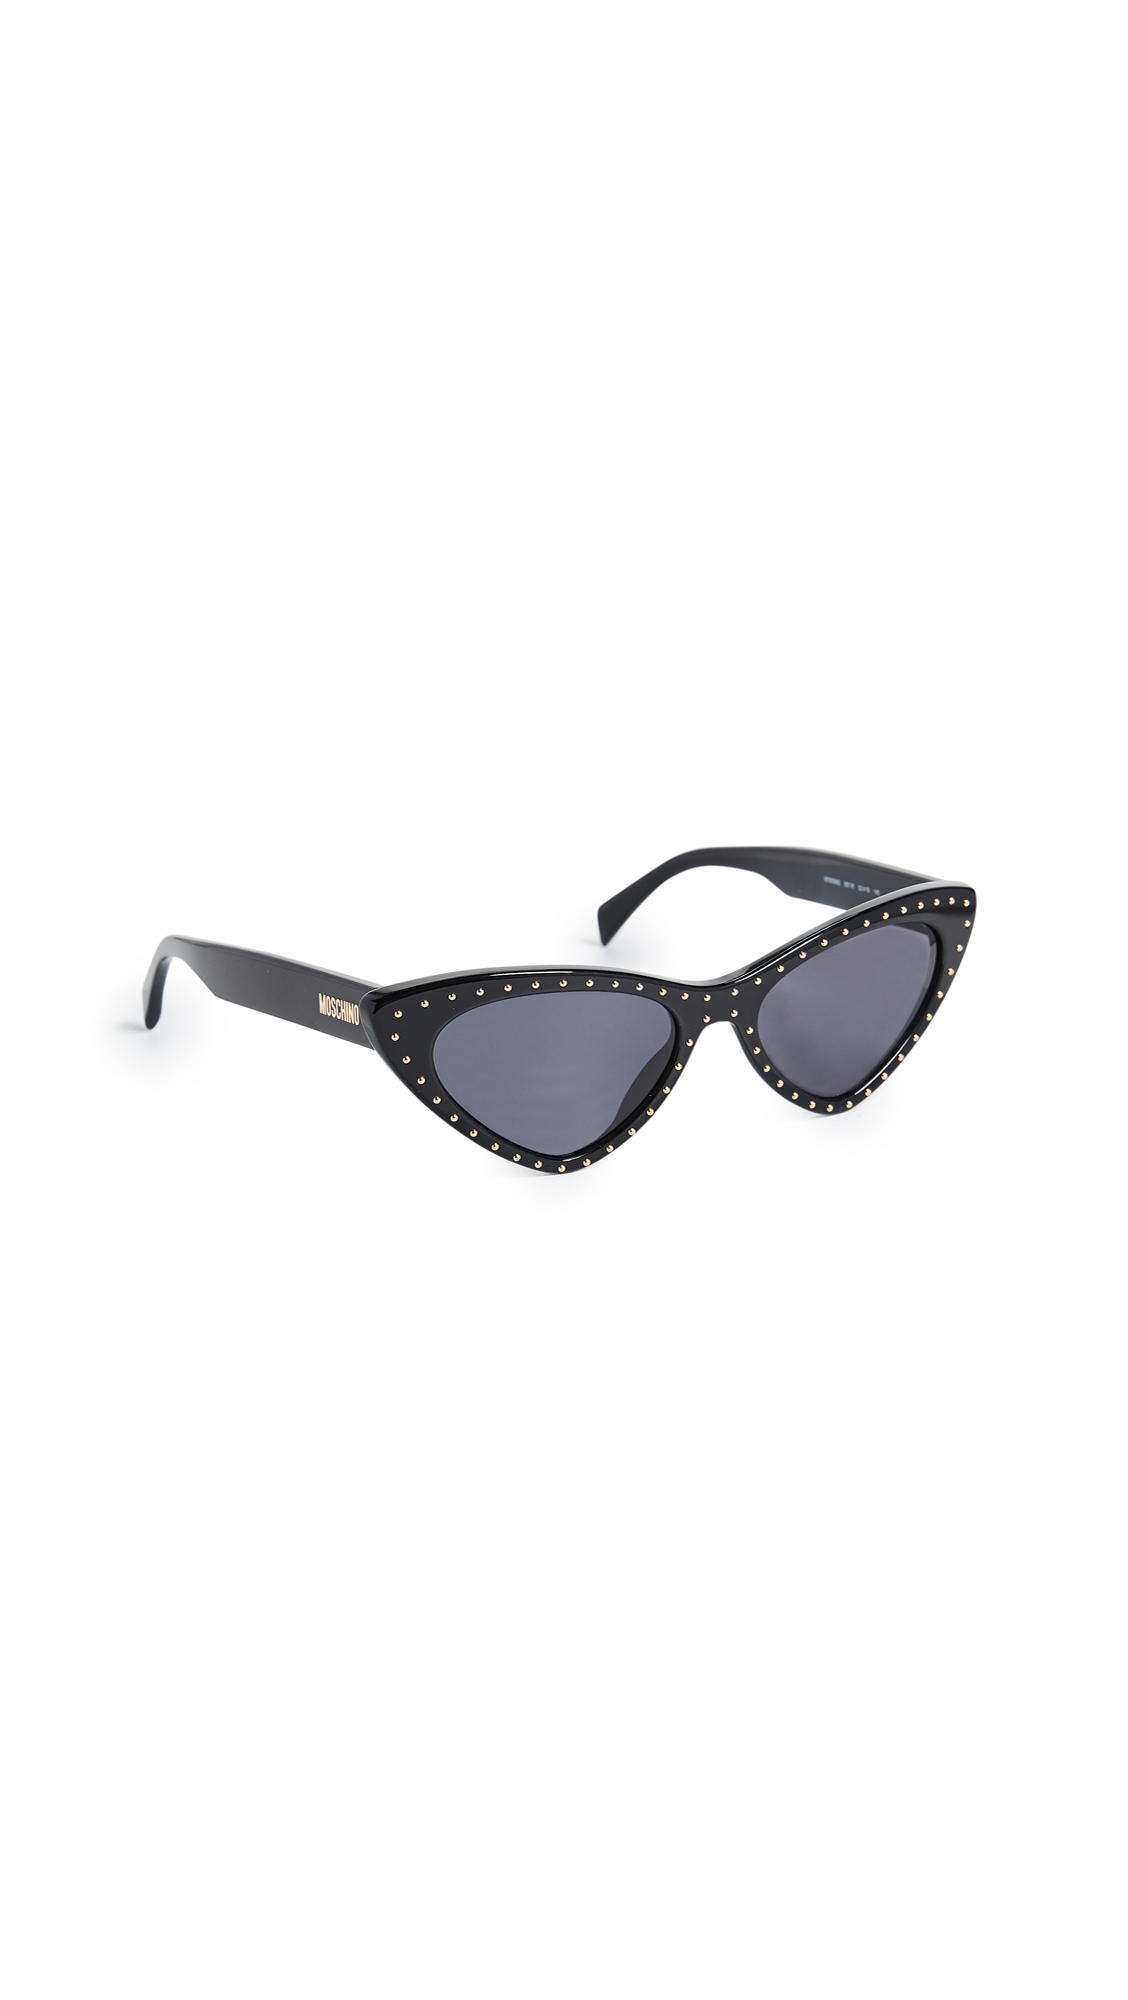 Moschino Pointed Cat Eye Sunglasses - Black/Grey Blue